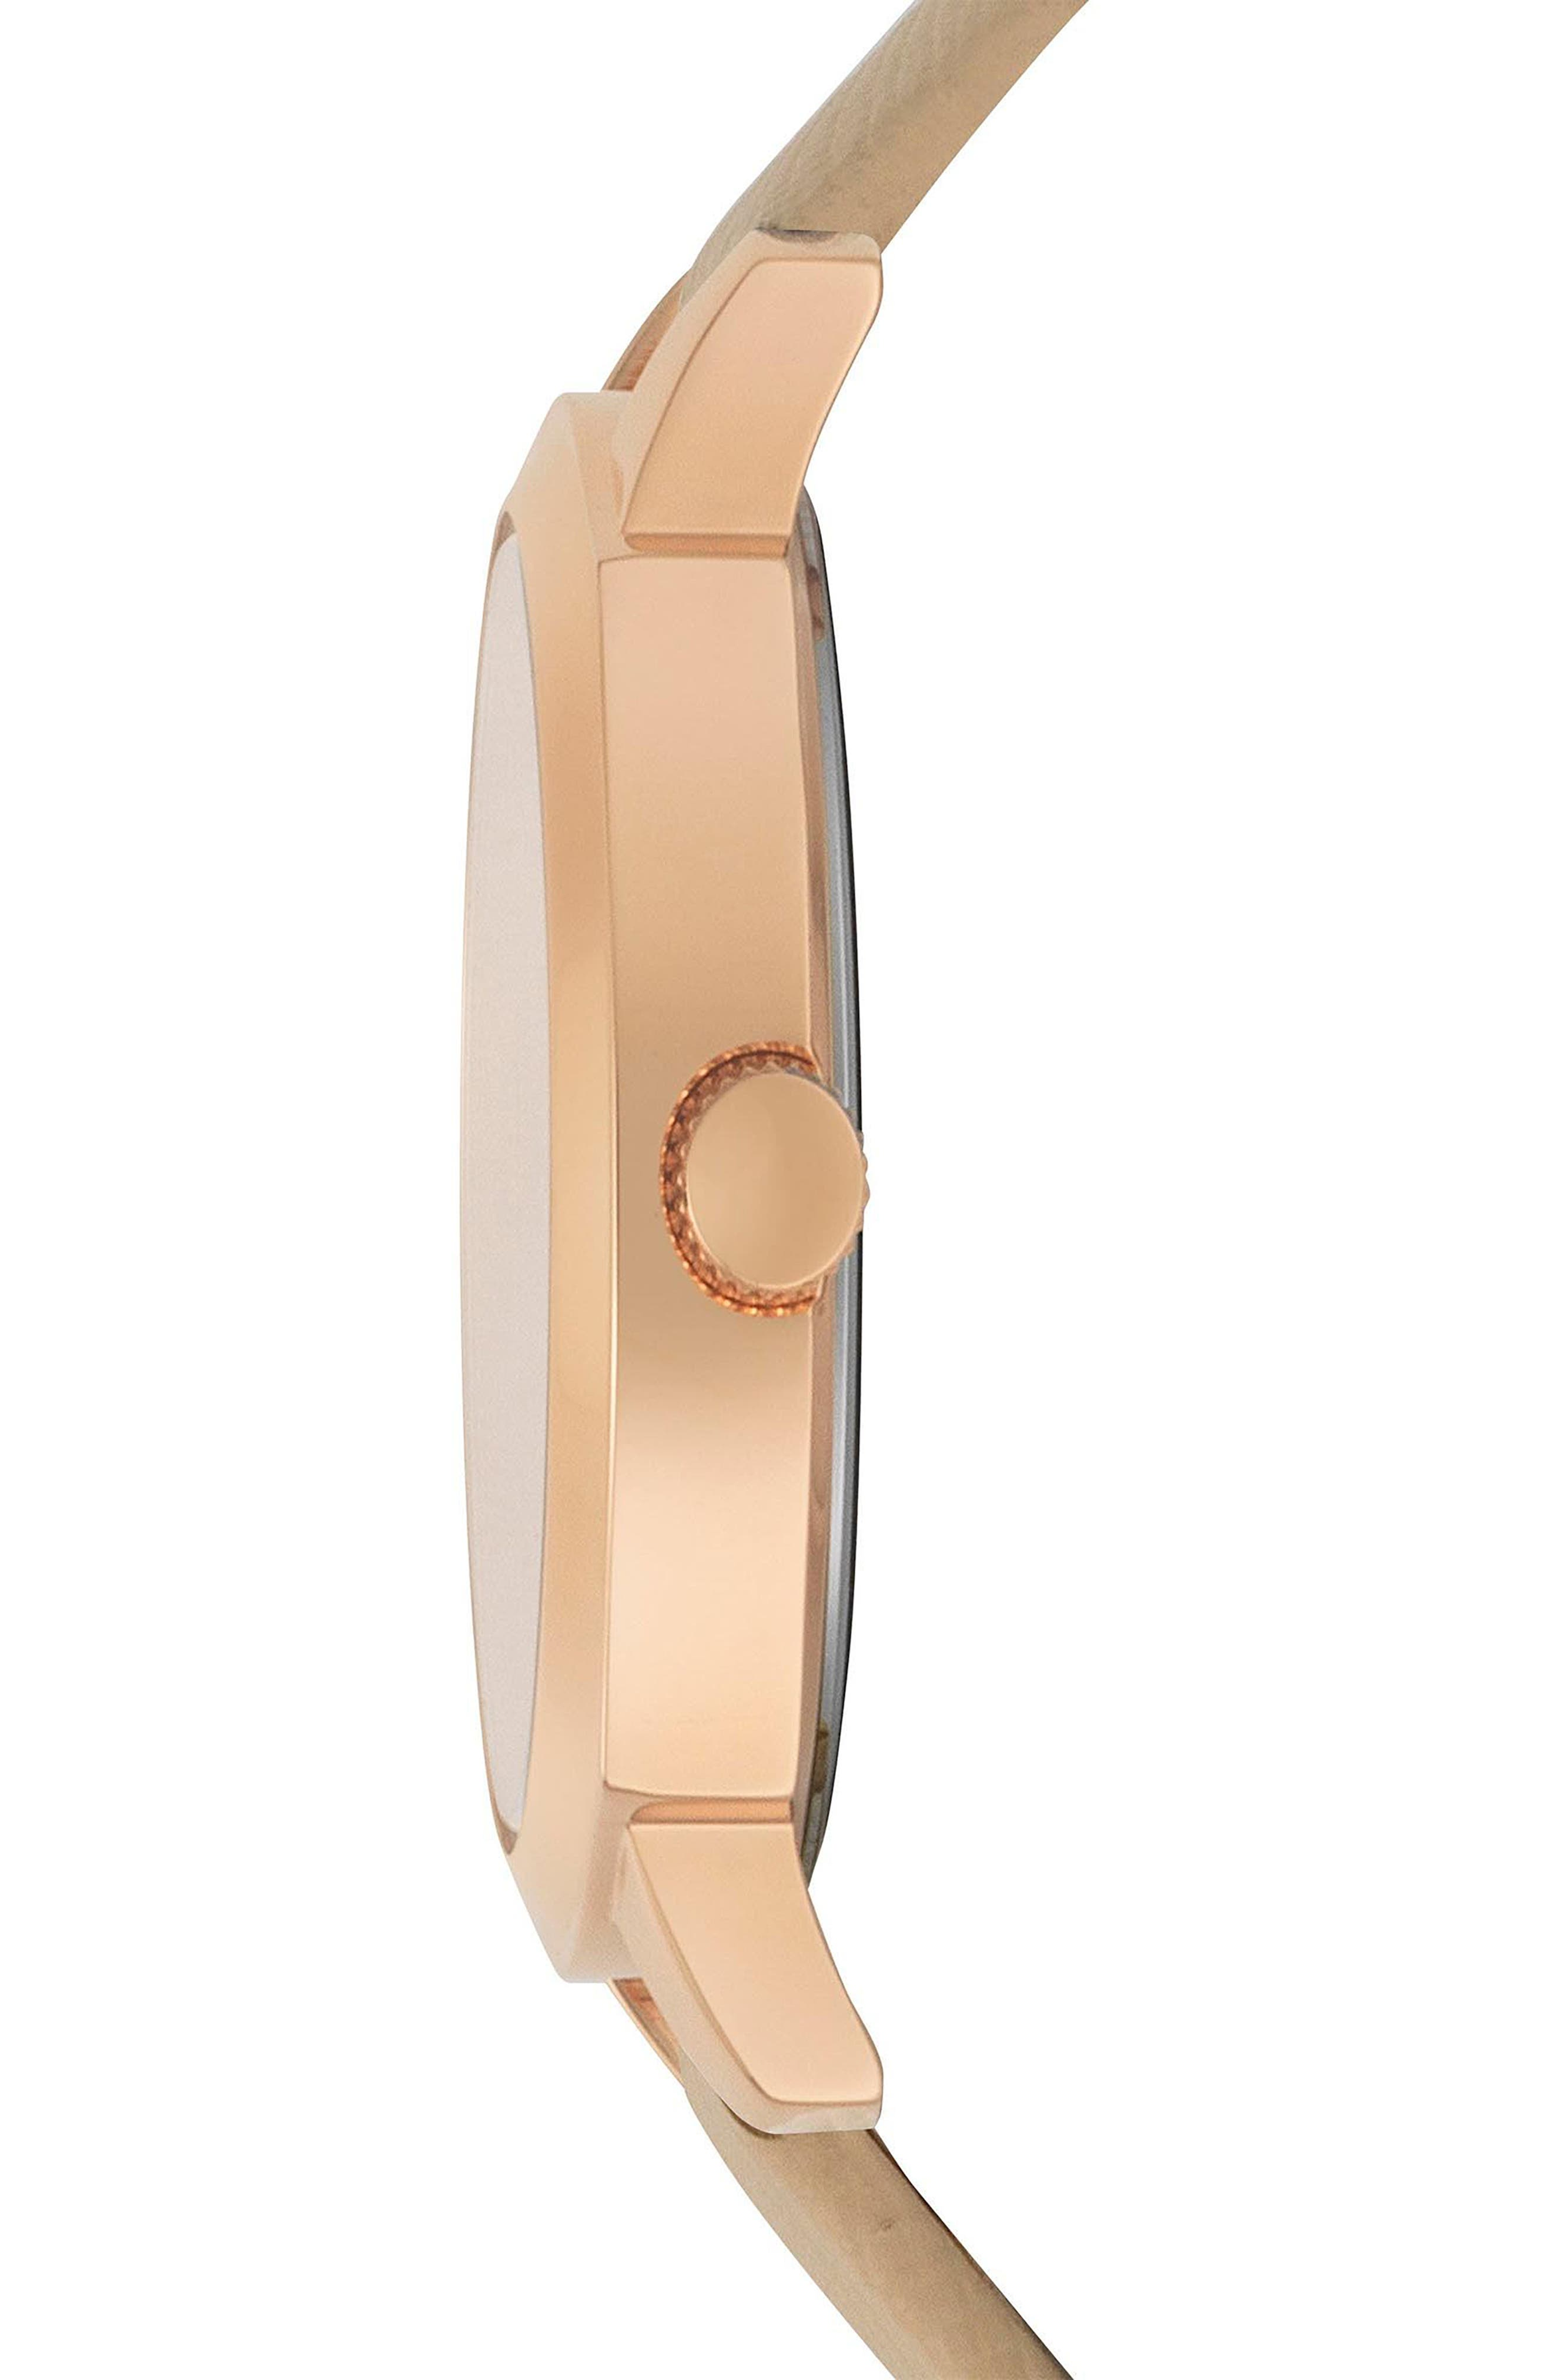 VERSUS by Versace Chelsea Leather Strap Watch, 34mm,                             Alternate thumbnail 2, color,                             Tan/ Rose Gold